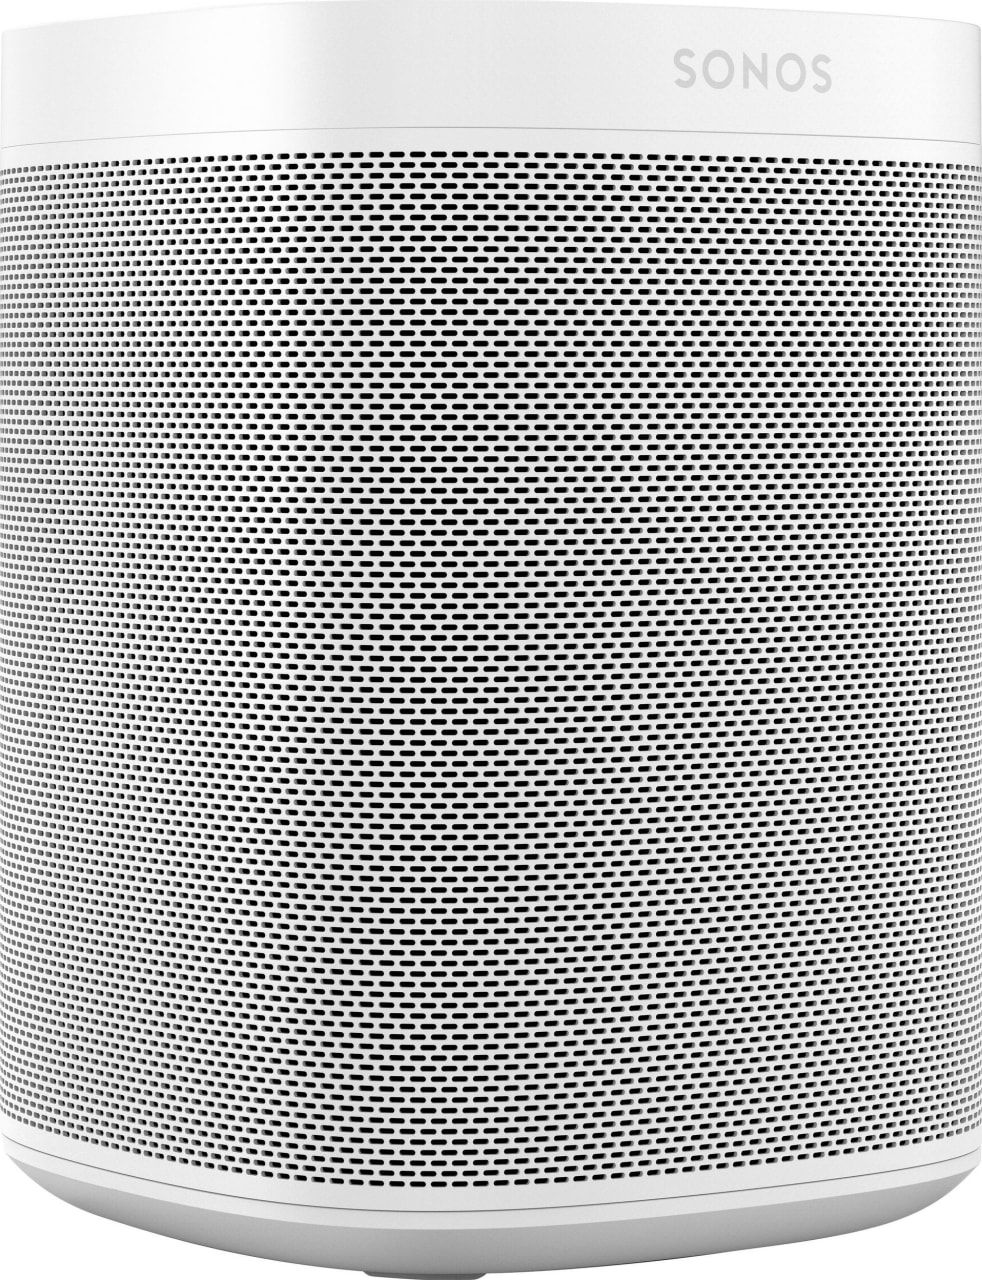 White Sonos One Gen2.2